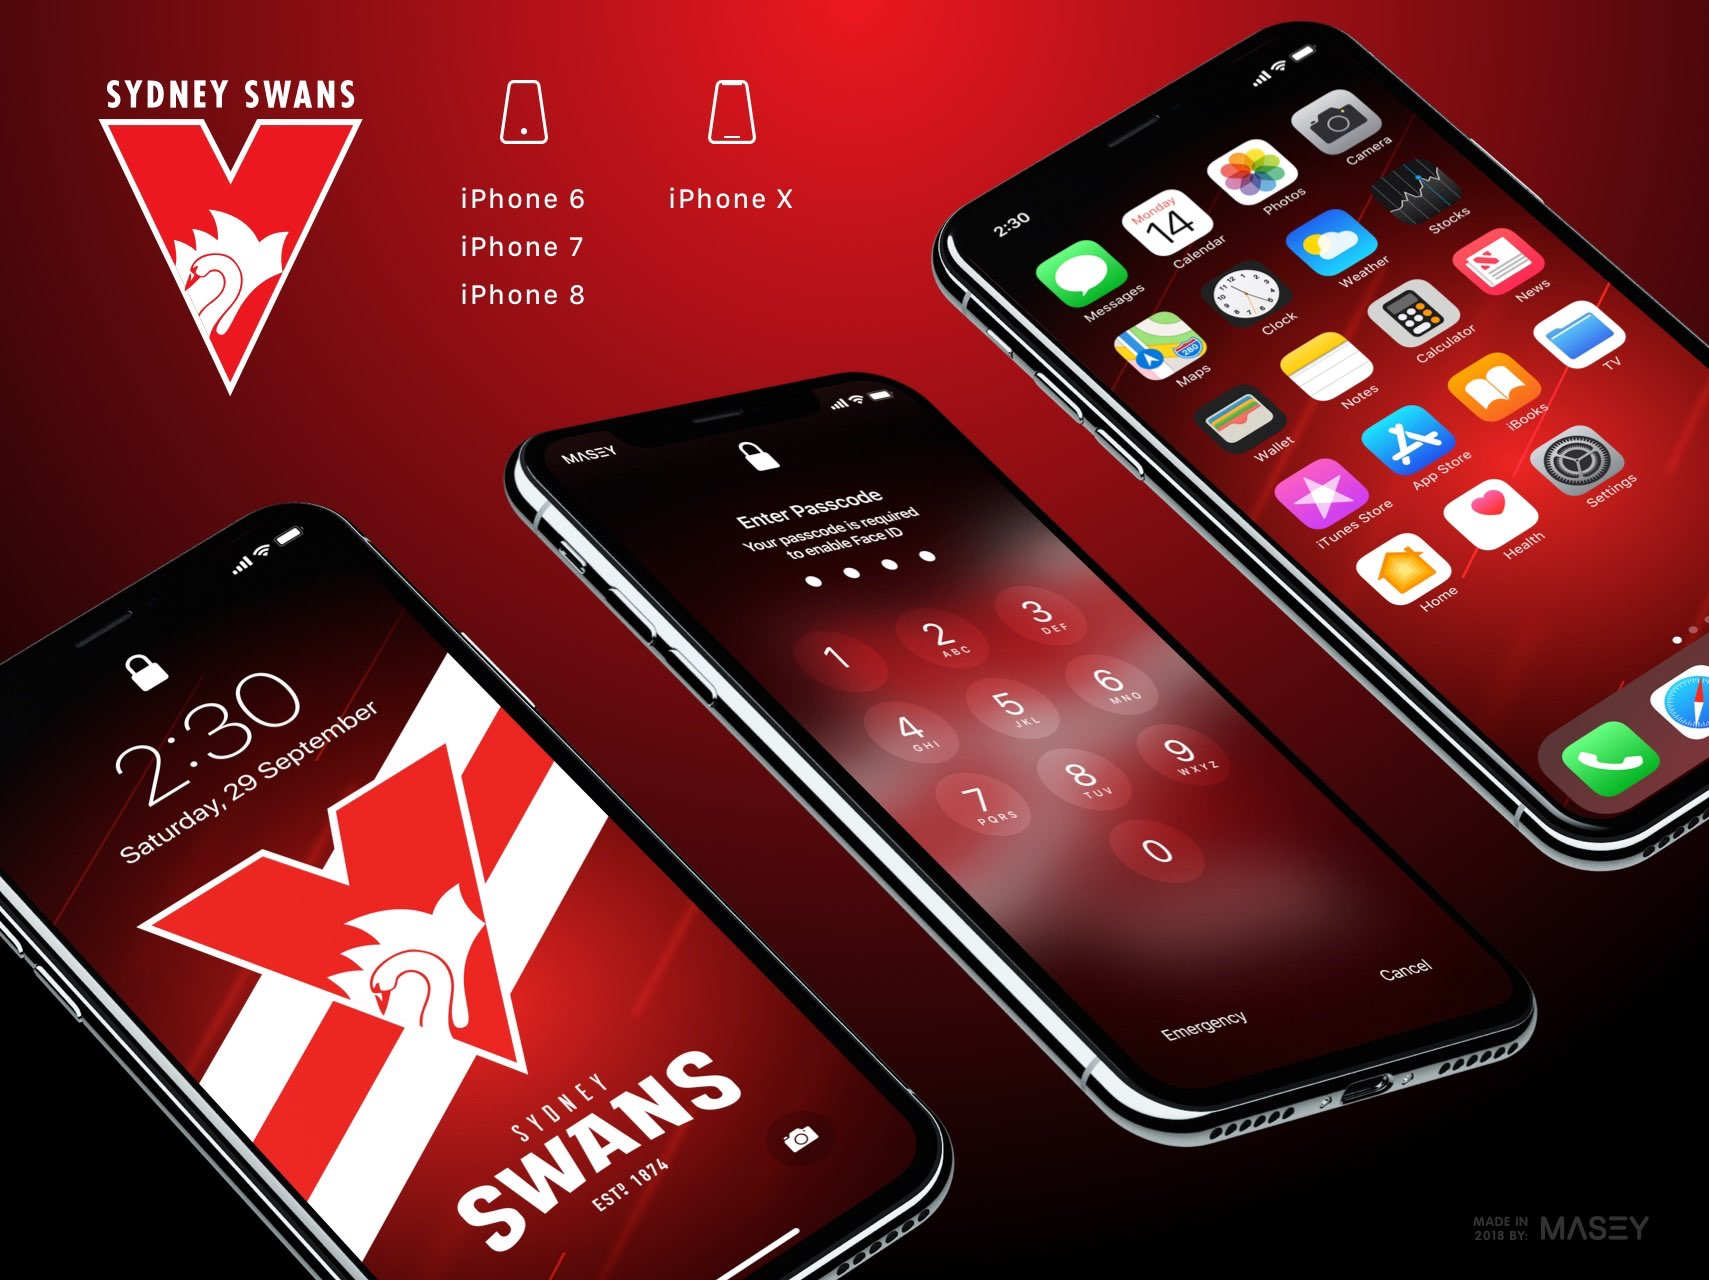 Sydney Swans iPhone Wallpaper